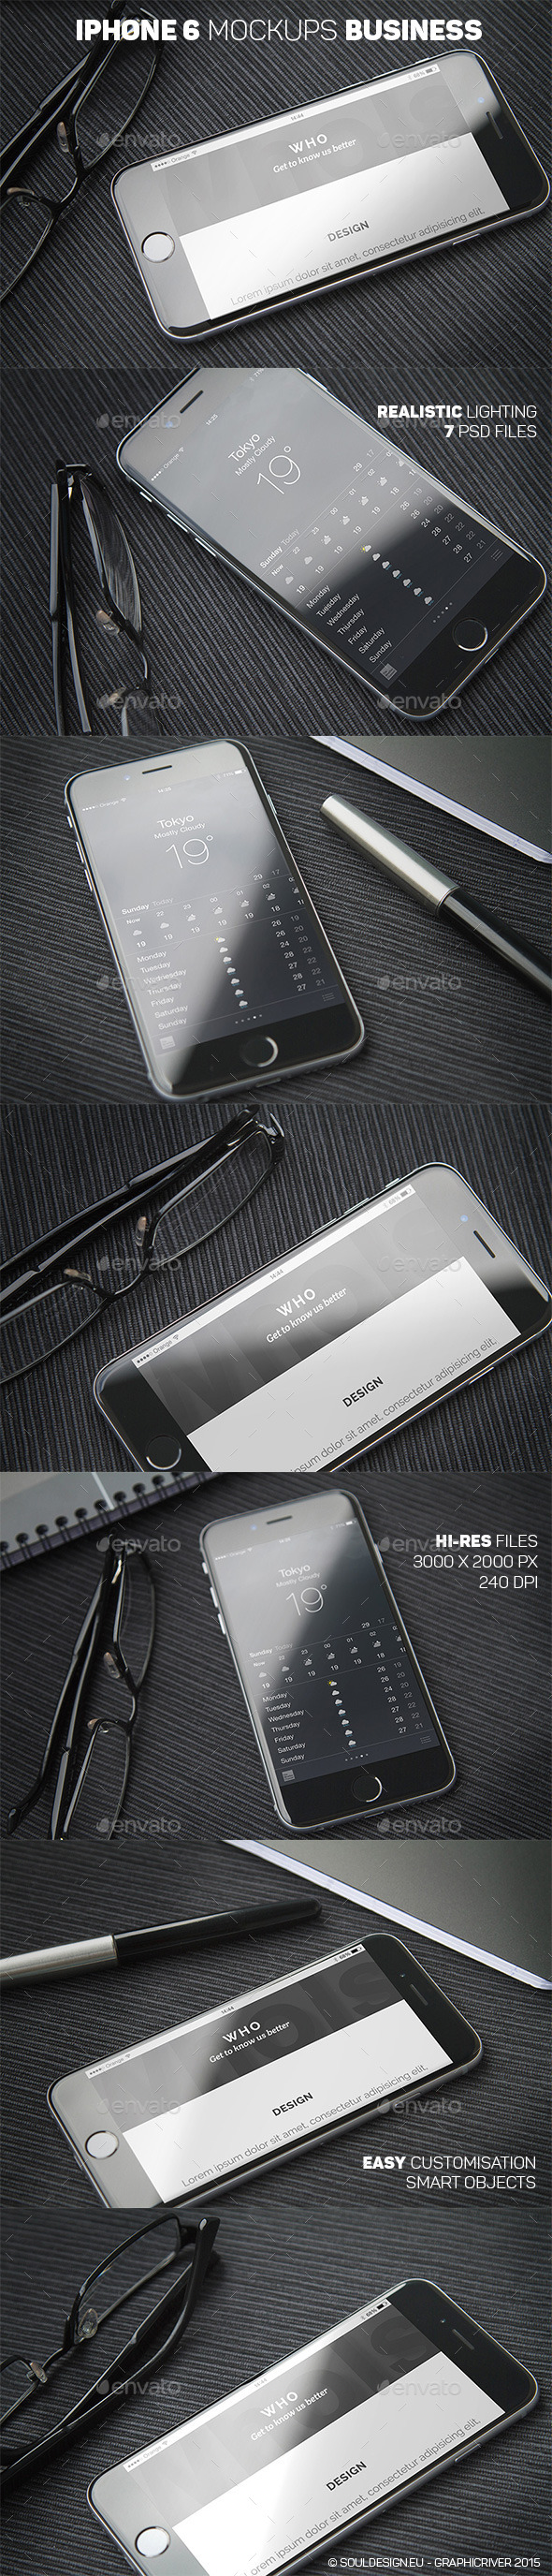 iPhone 6 Closeup Mockups Business - Mobile Displays